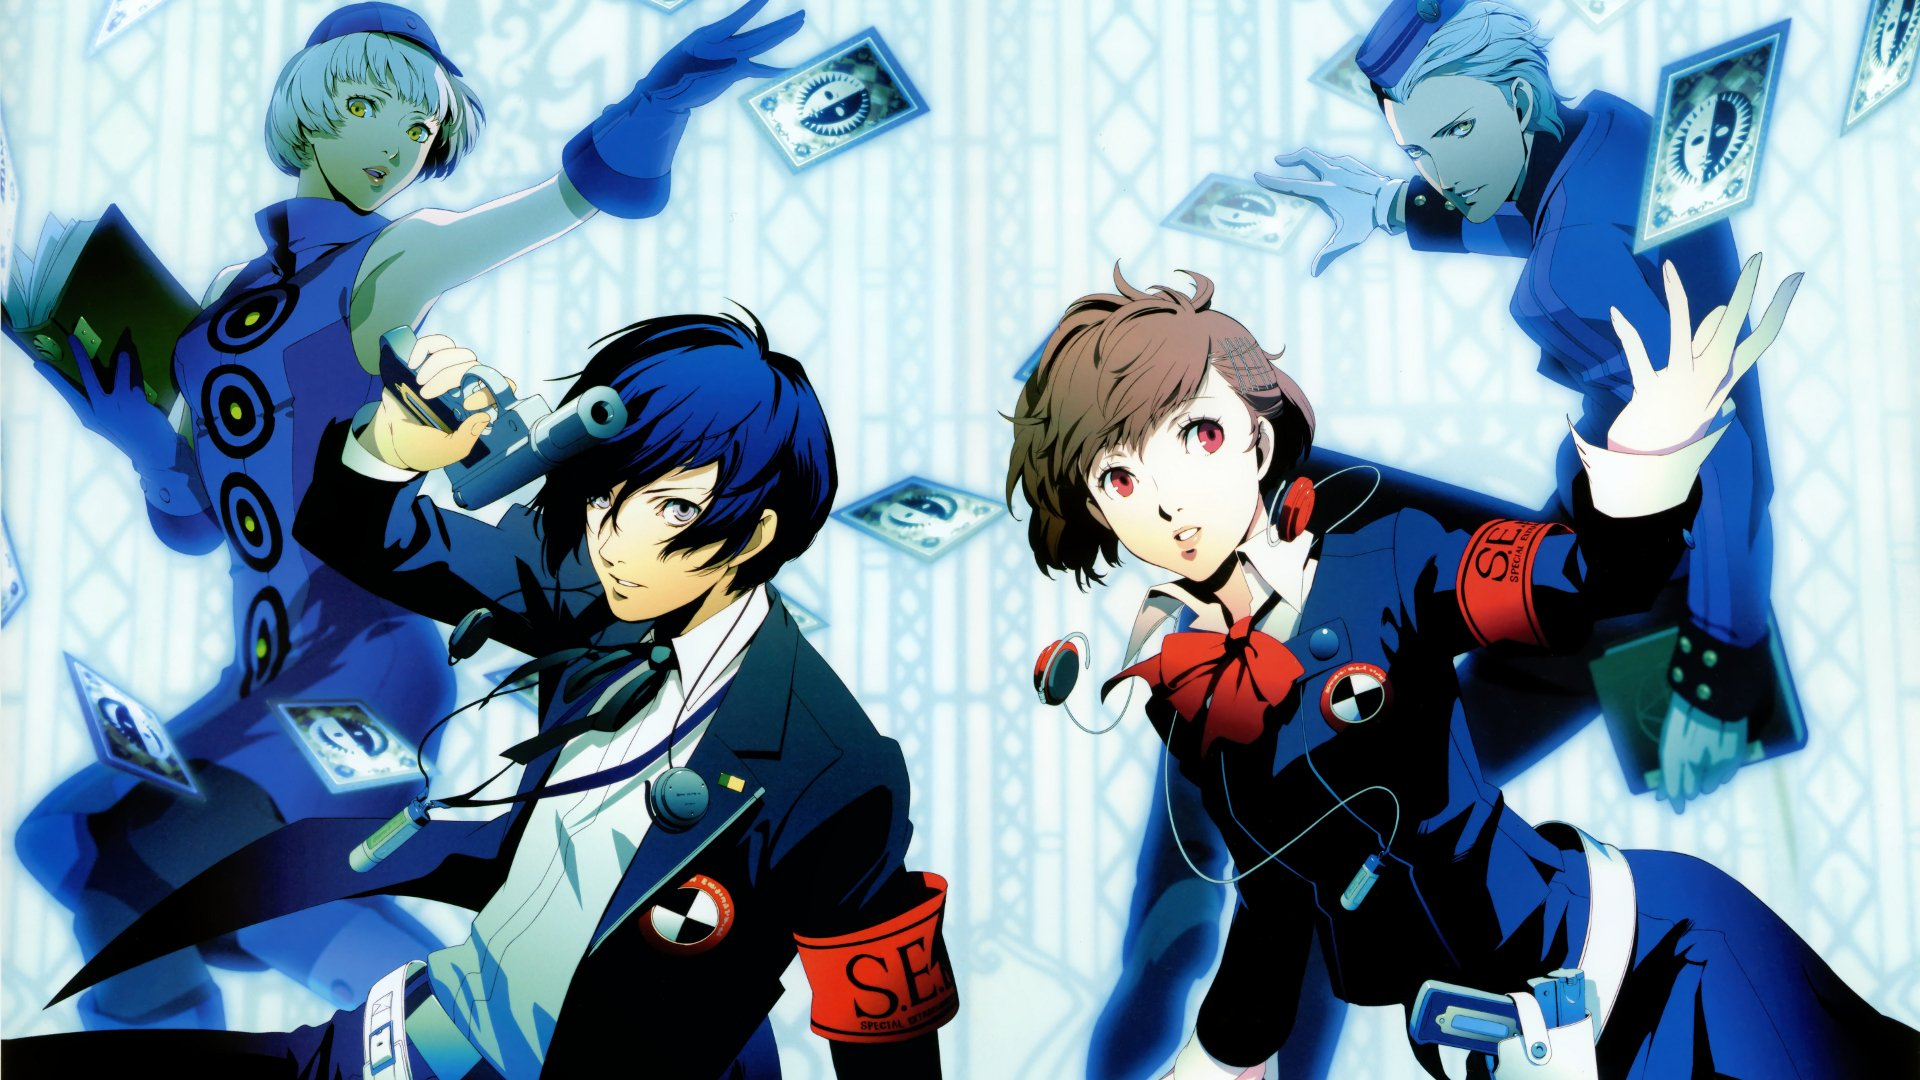 Persona 3 iphone 5 wallpaper - Hd Wallpaper Background Id 516032